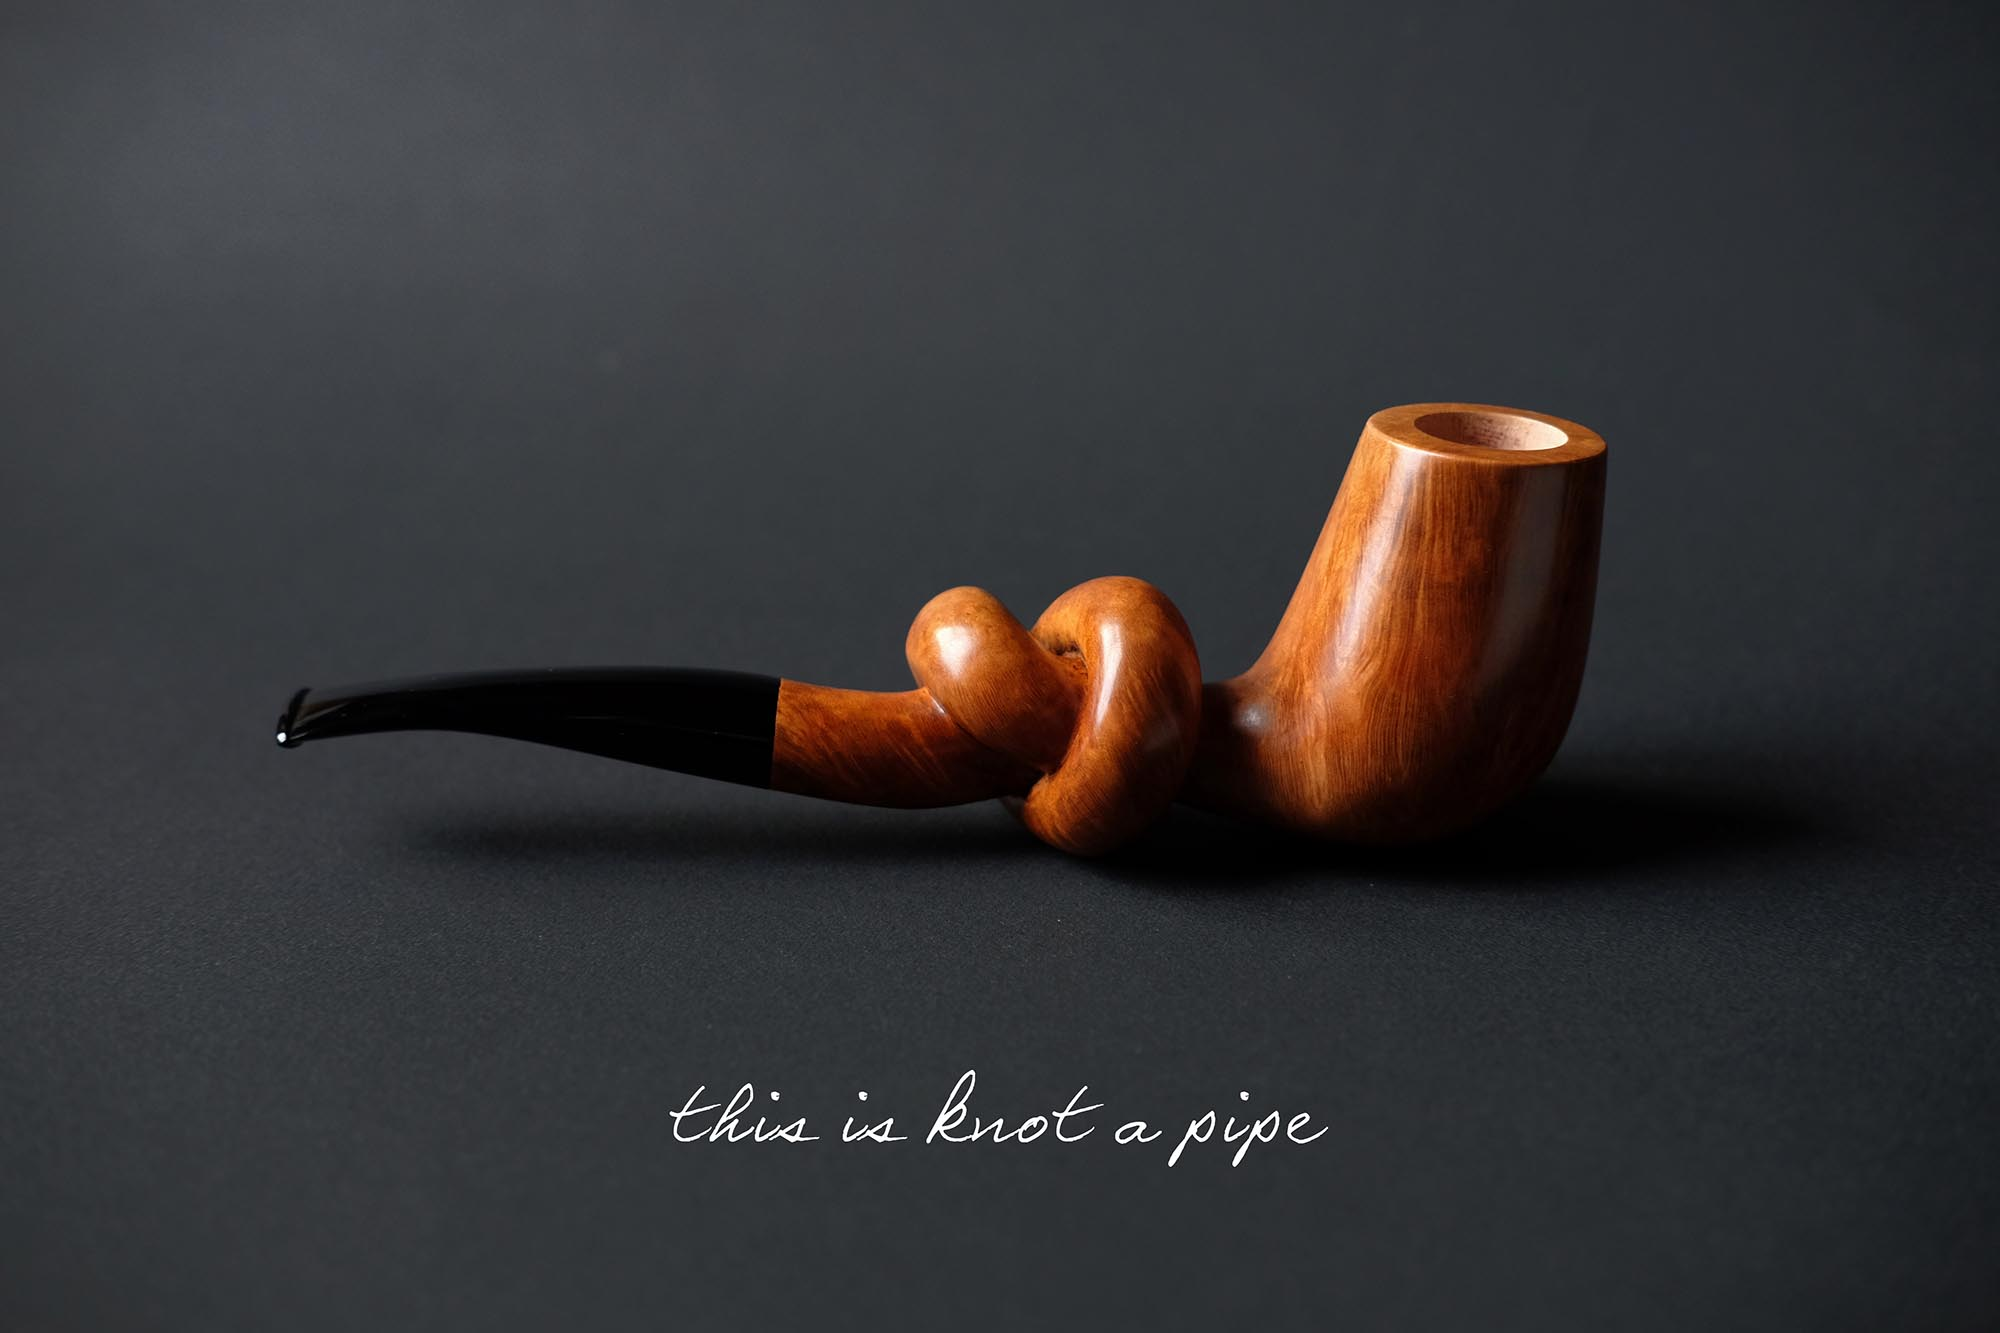 This is knot a pipe, handmade artistic tobacco pipe by arcangelo ambrosi